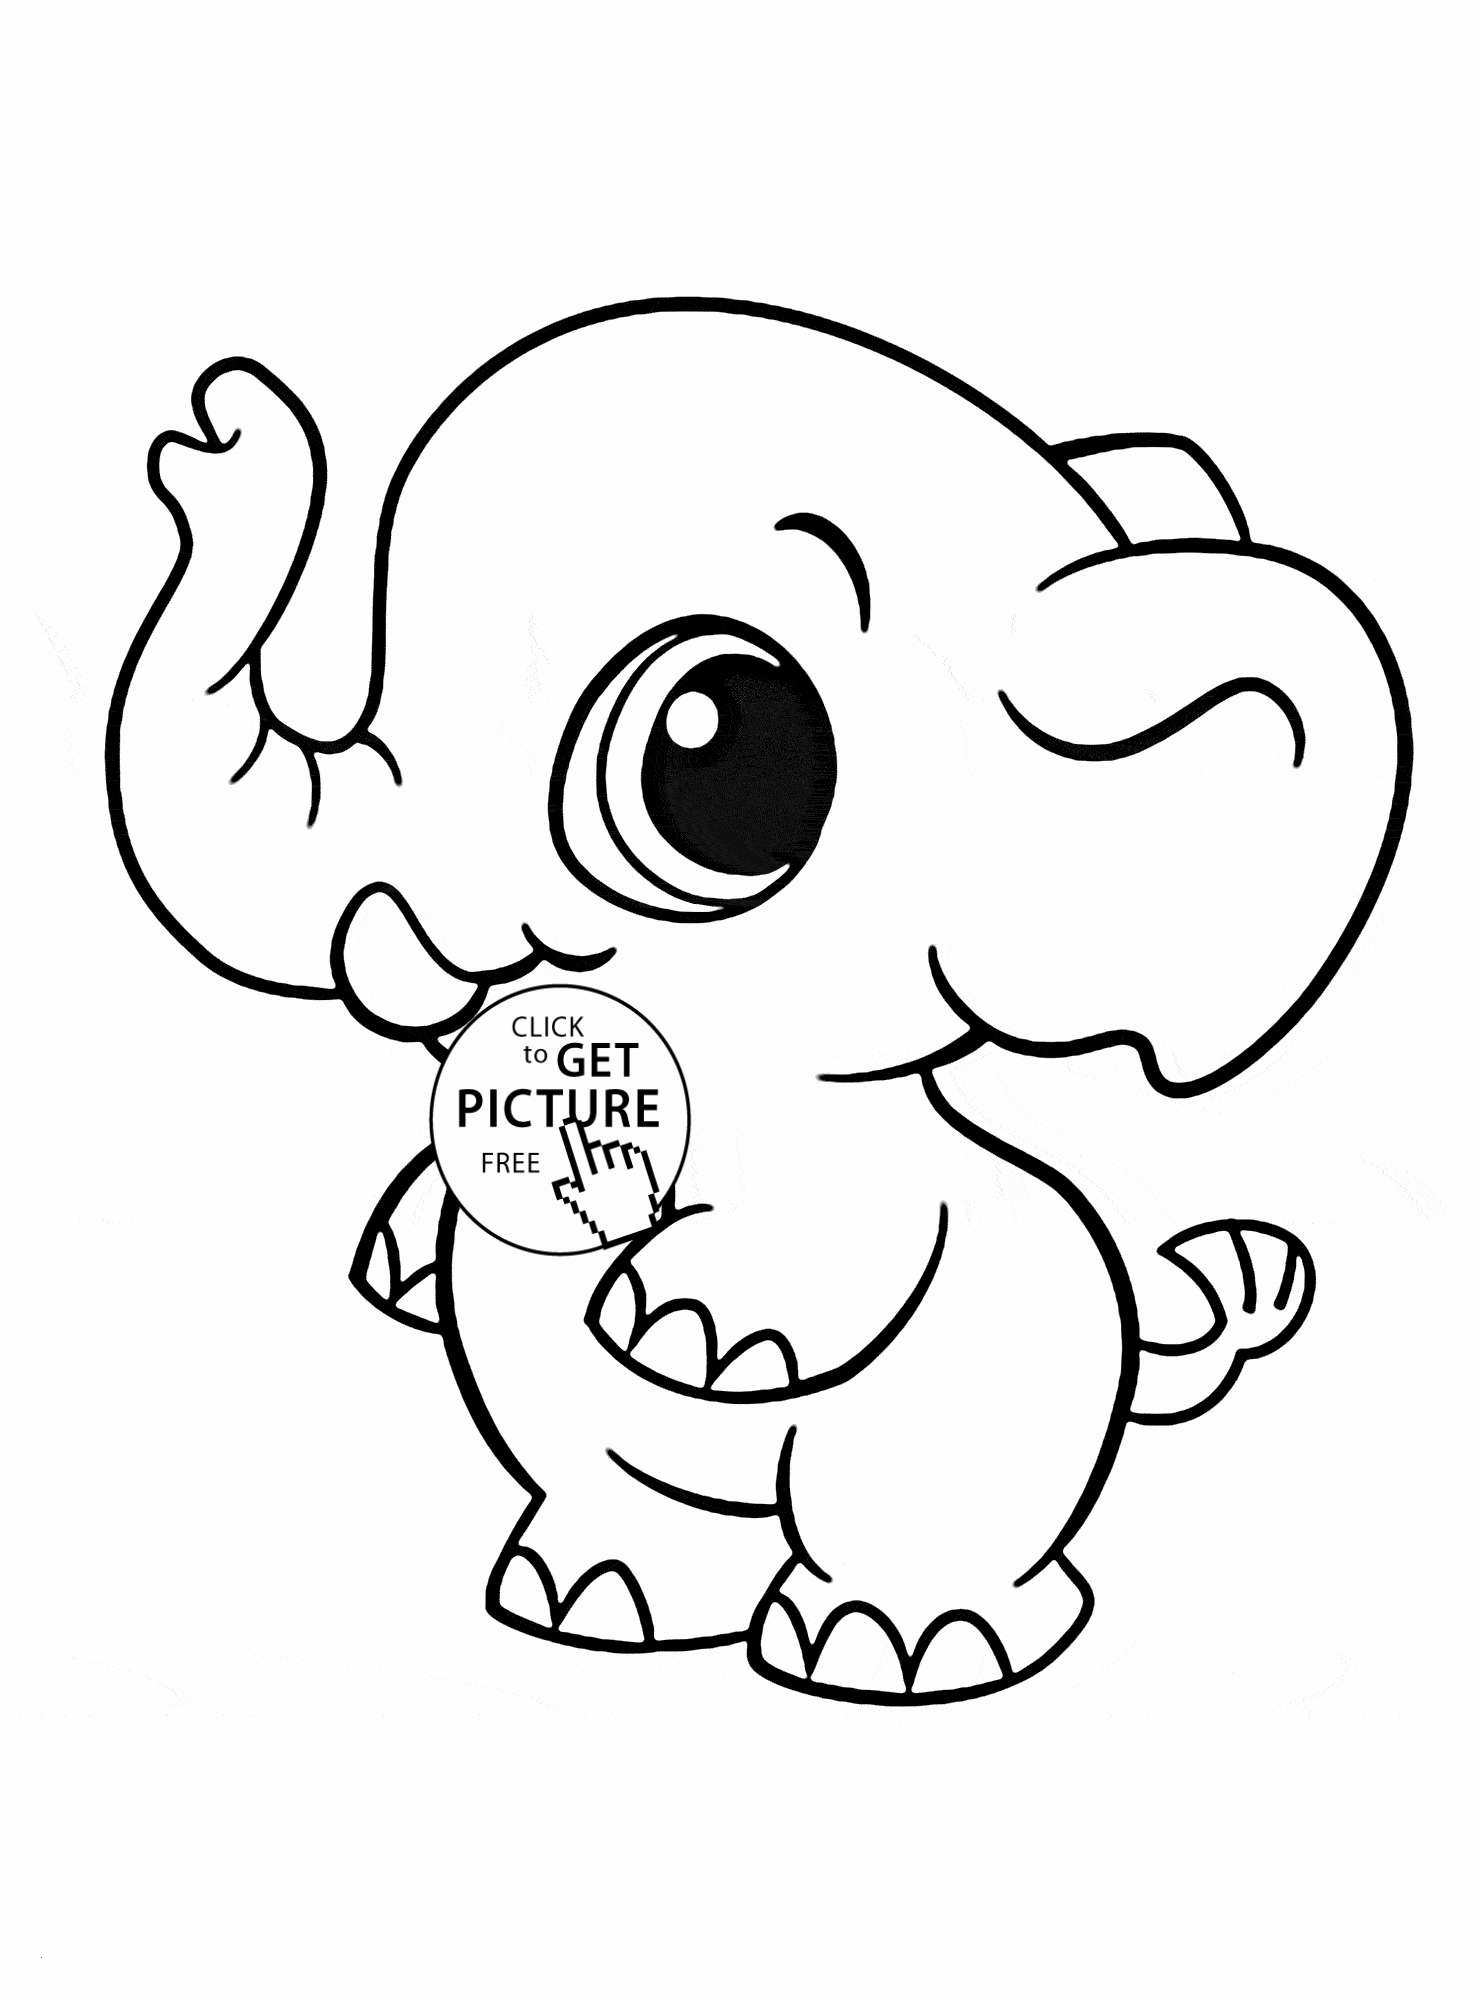 sloth pictures to print cute cartoon sloth coloring pages free printable to print sloth pictures